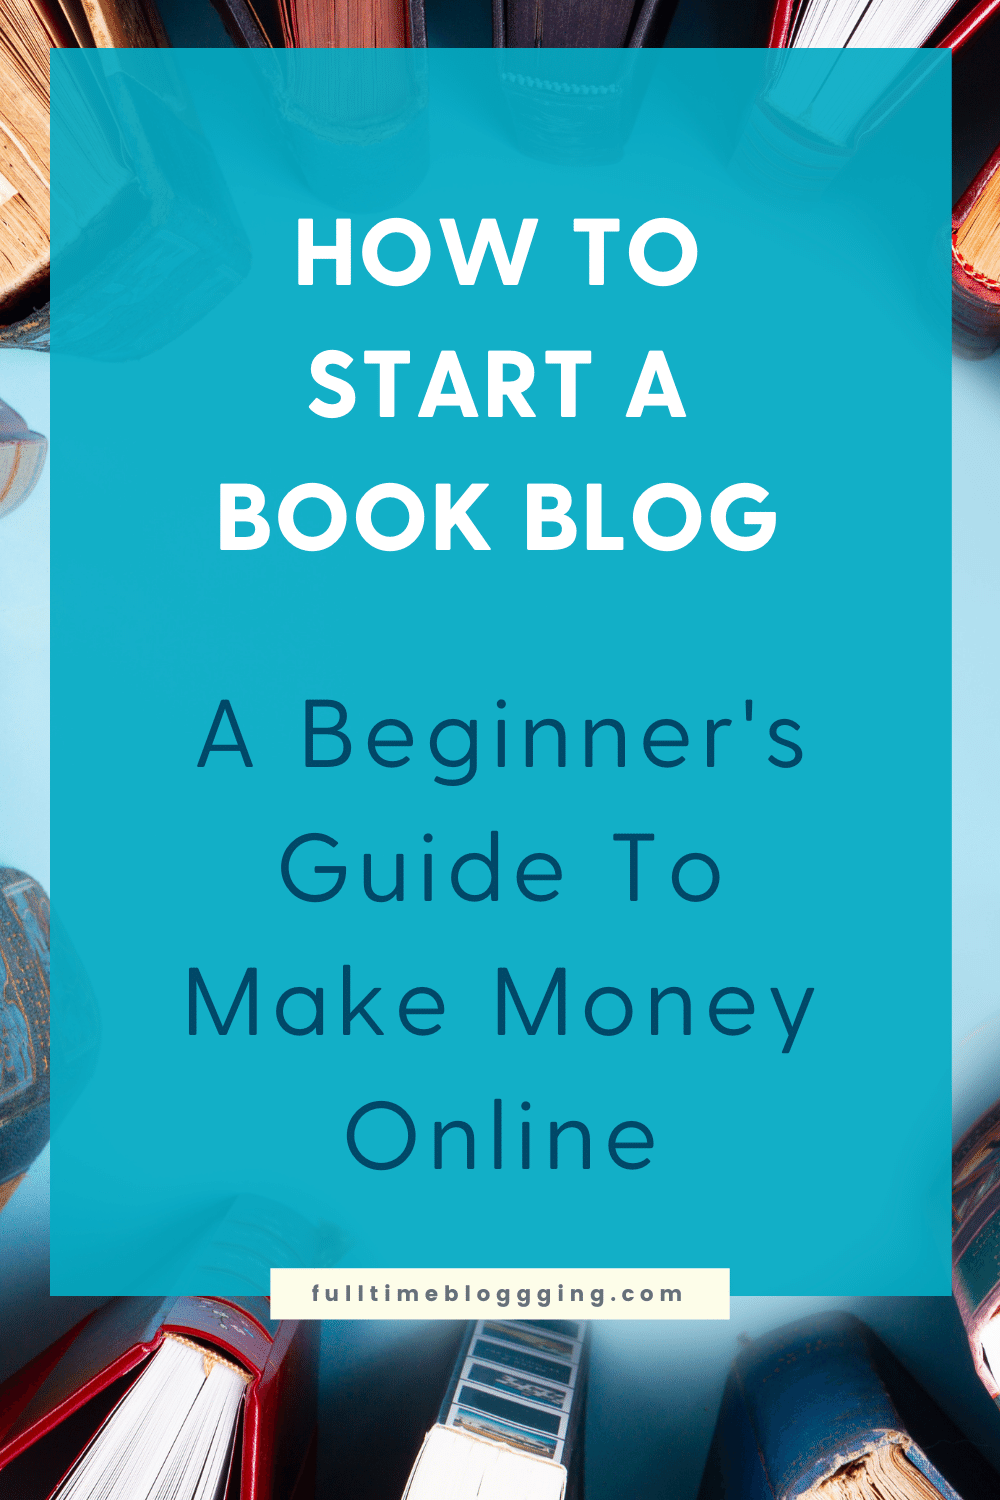 How To Start A Blog About Books